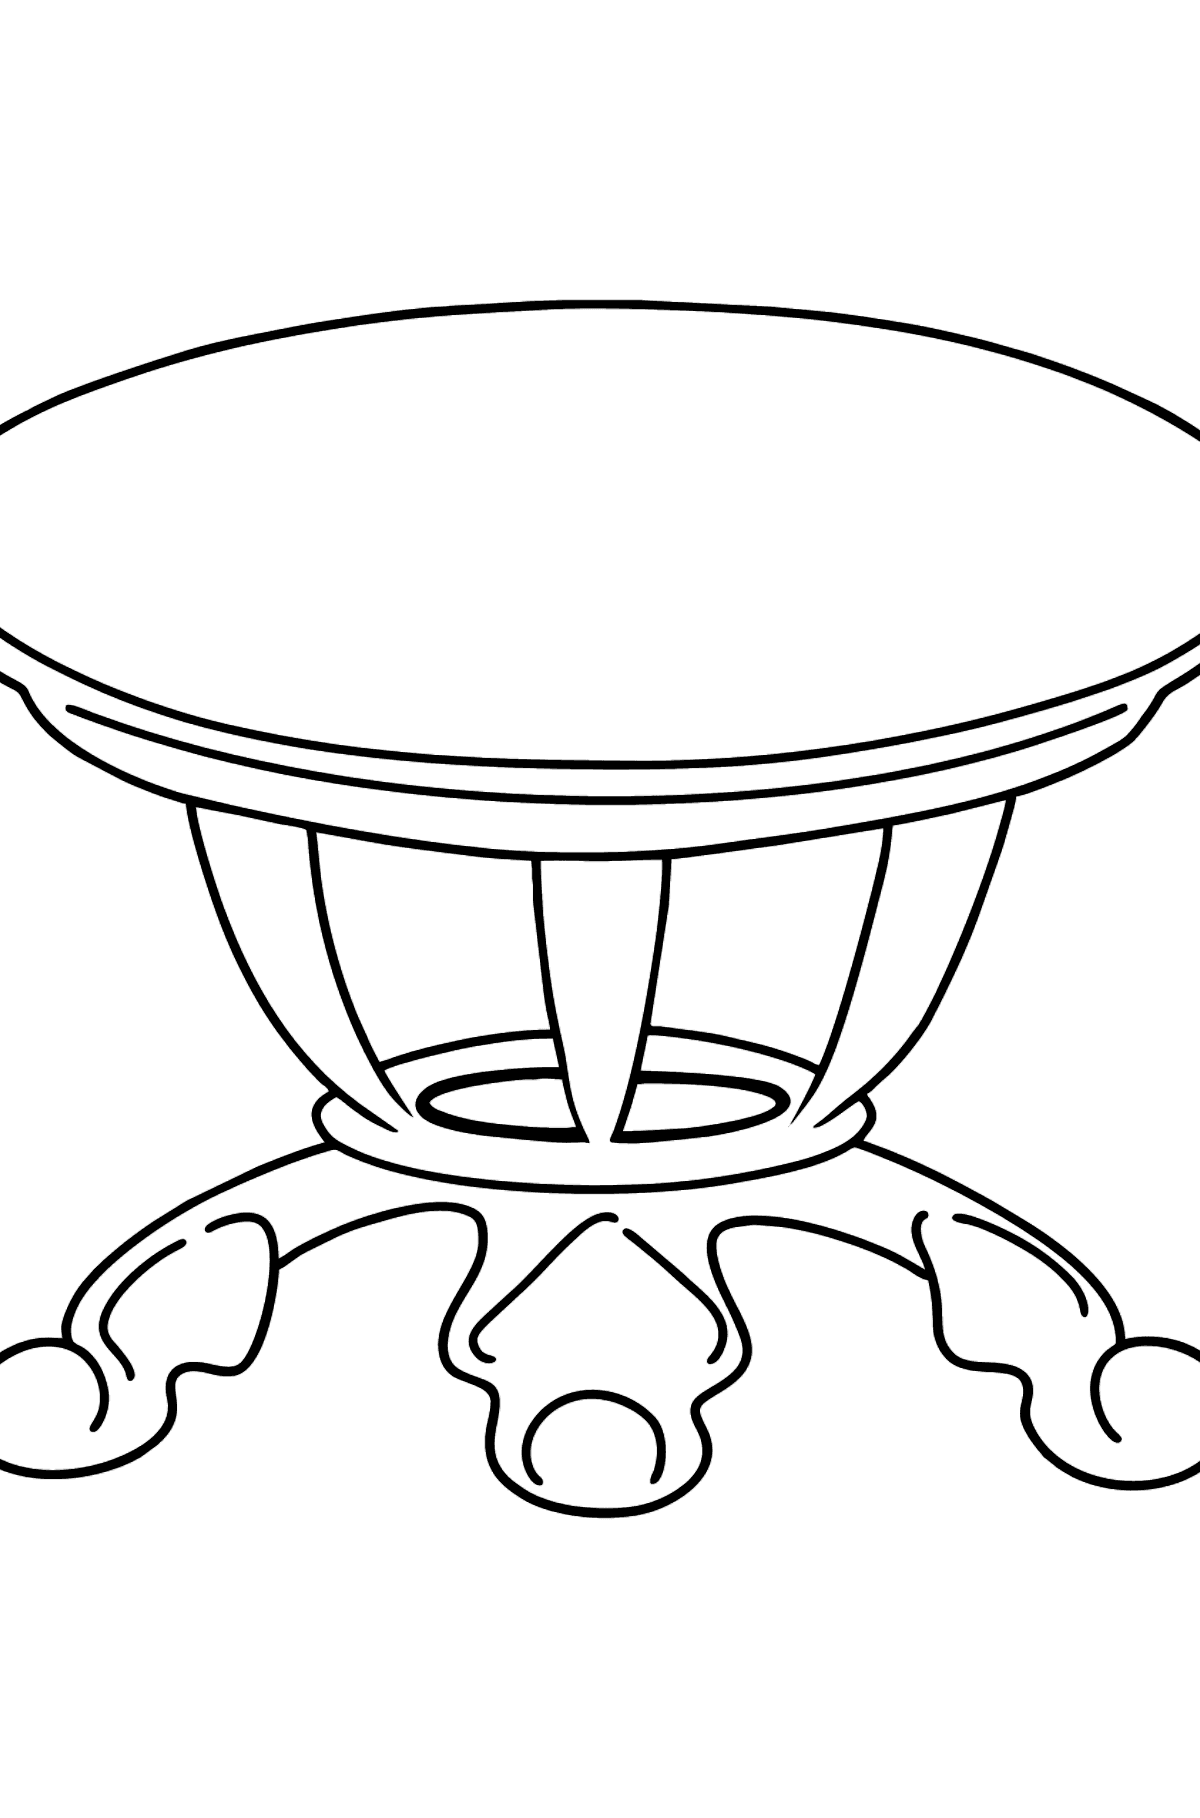 Dining Table coloring page - Coloring Pages for Kids